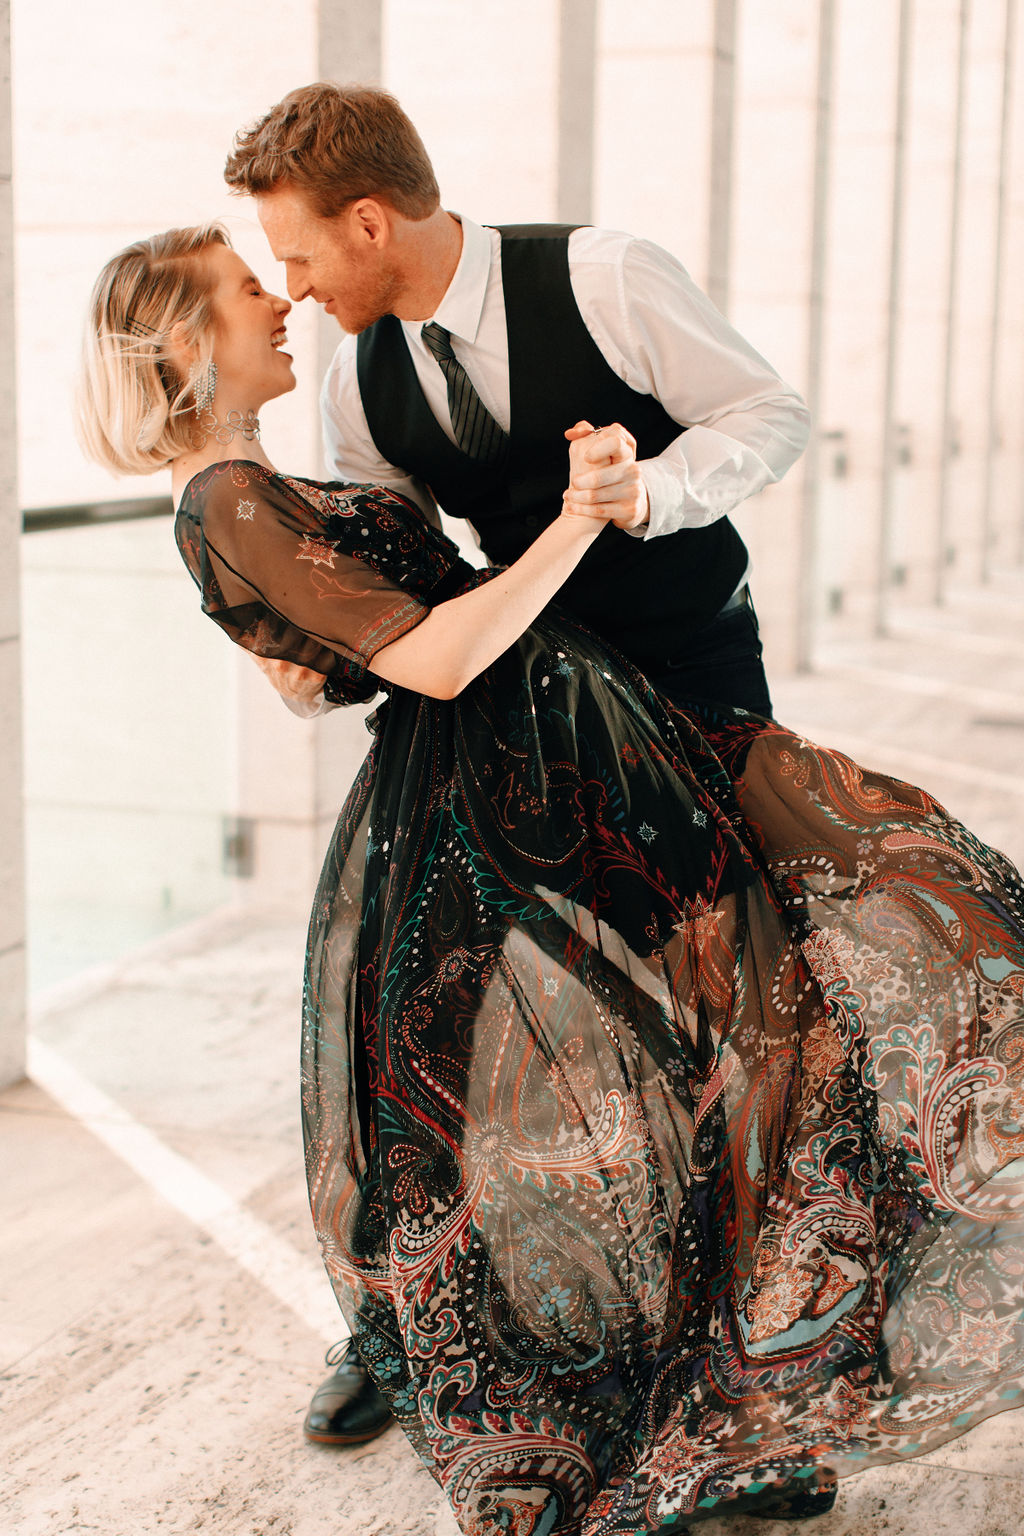 Modern, romantic engagement session featured on Nashville Bride Guide